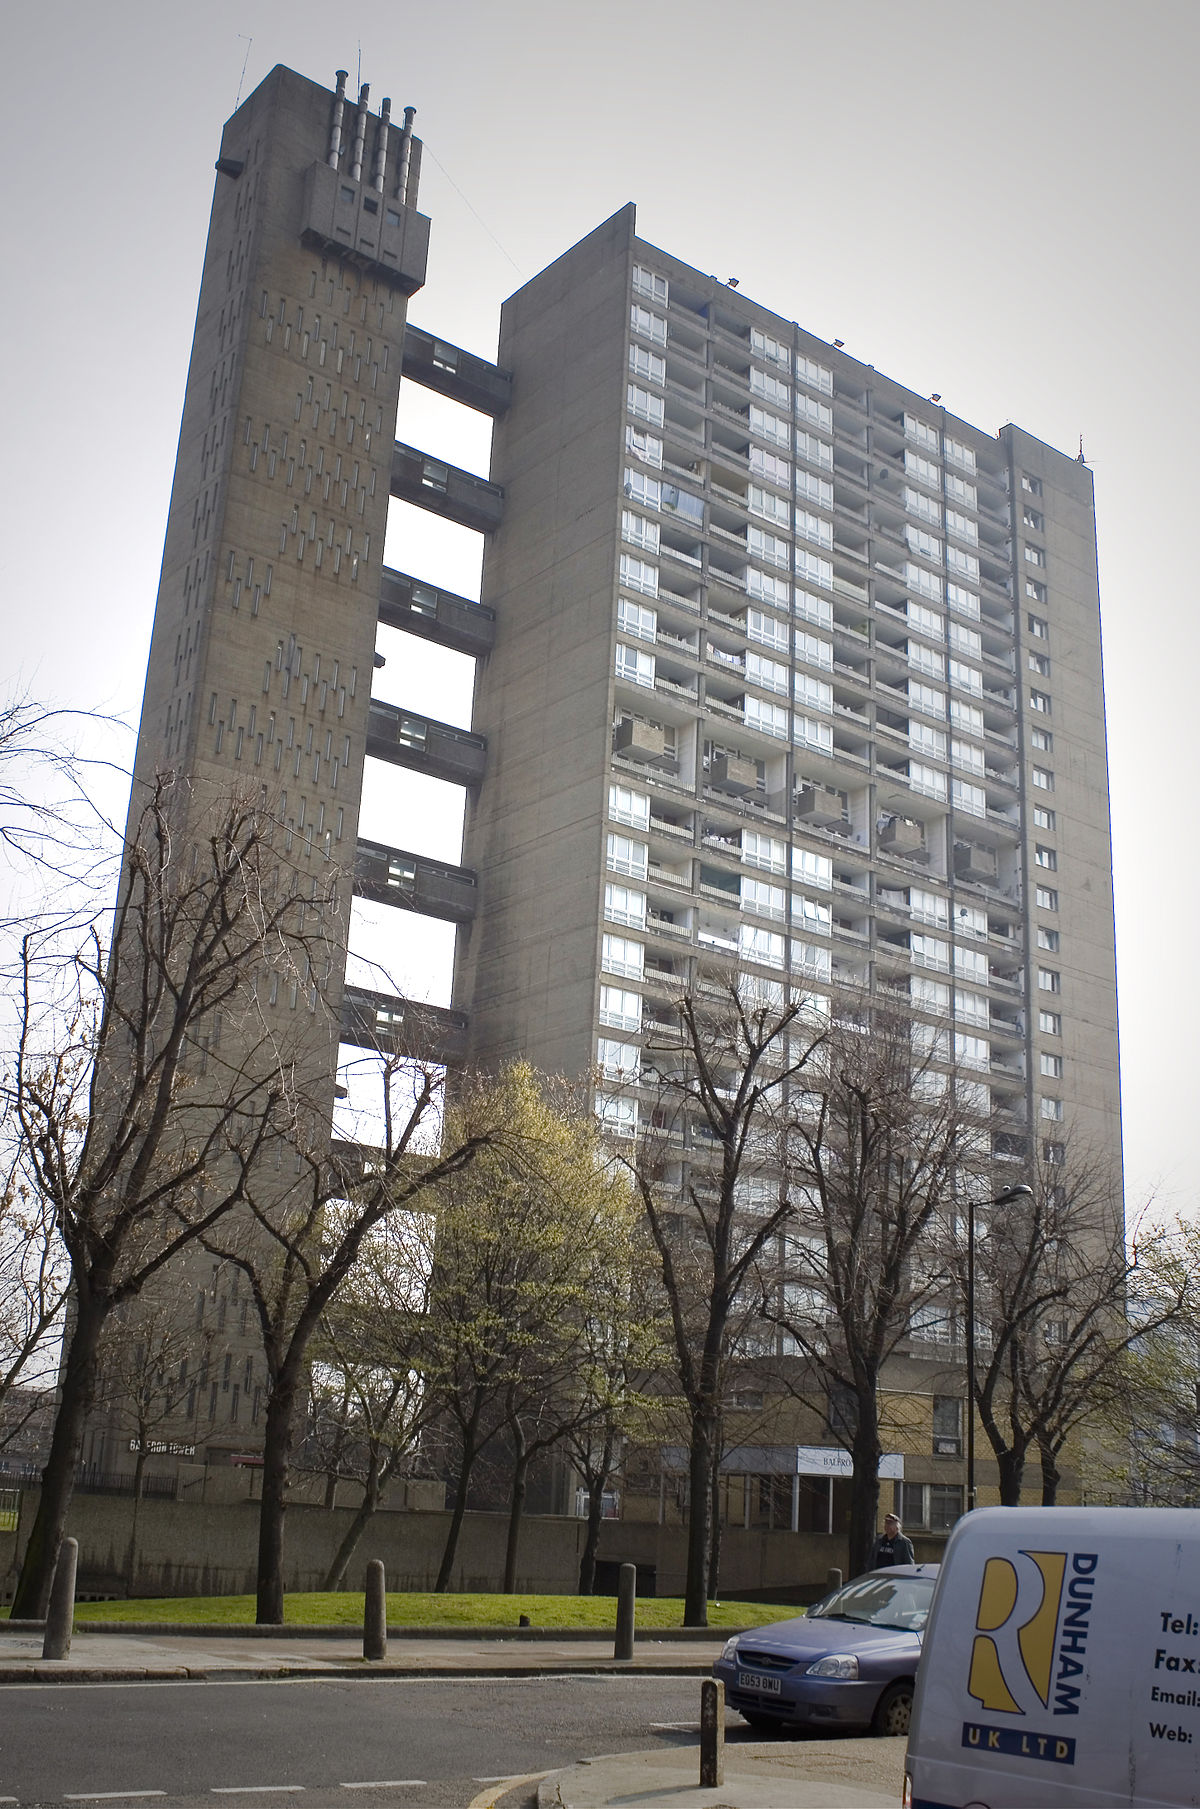 Balfron Tower Wikipedia